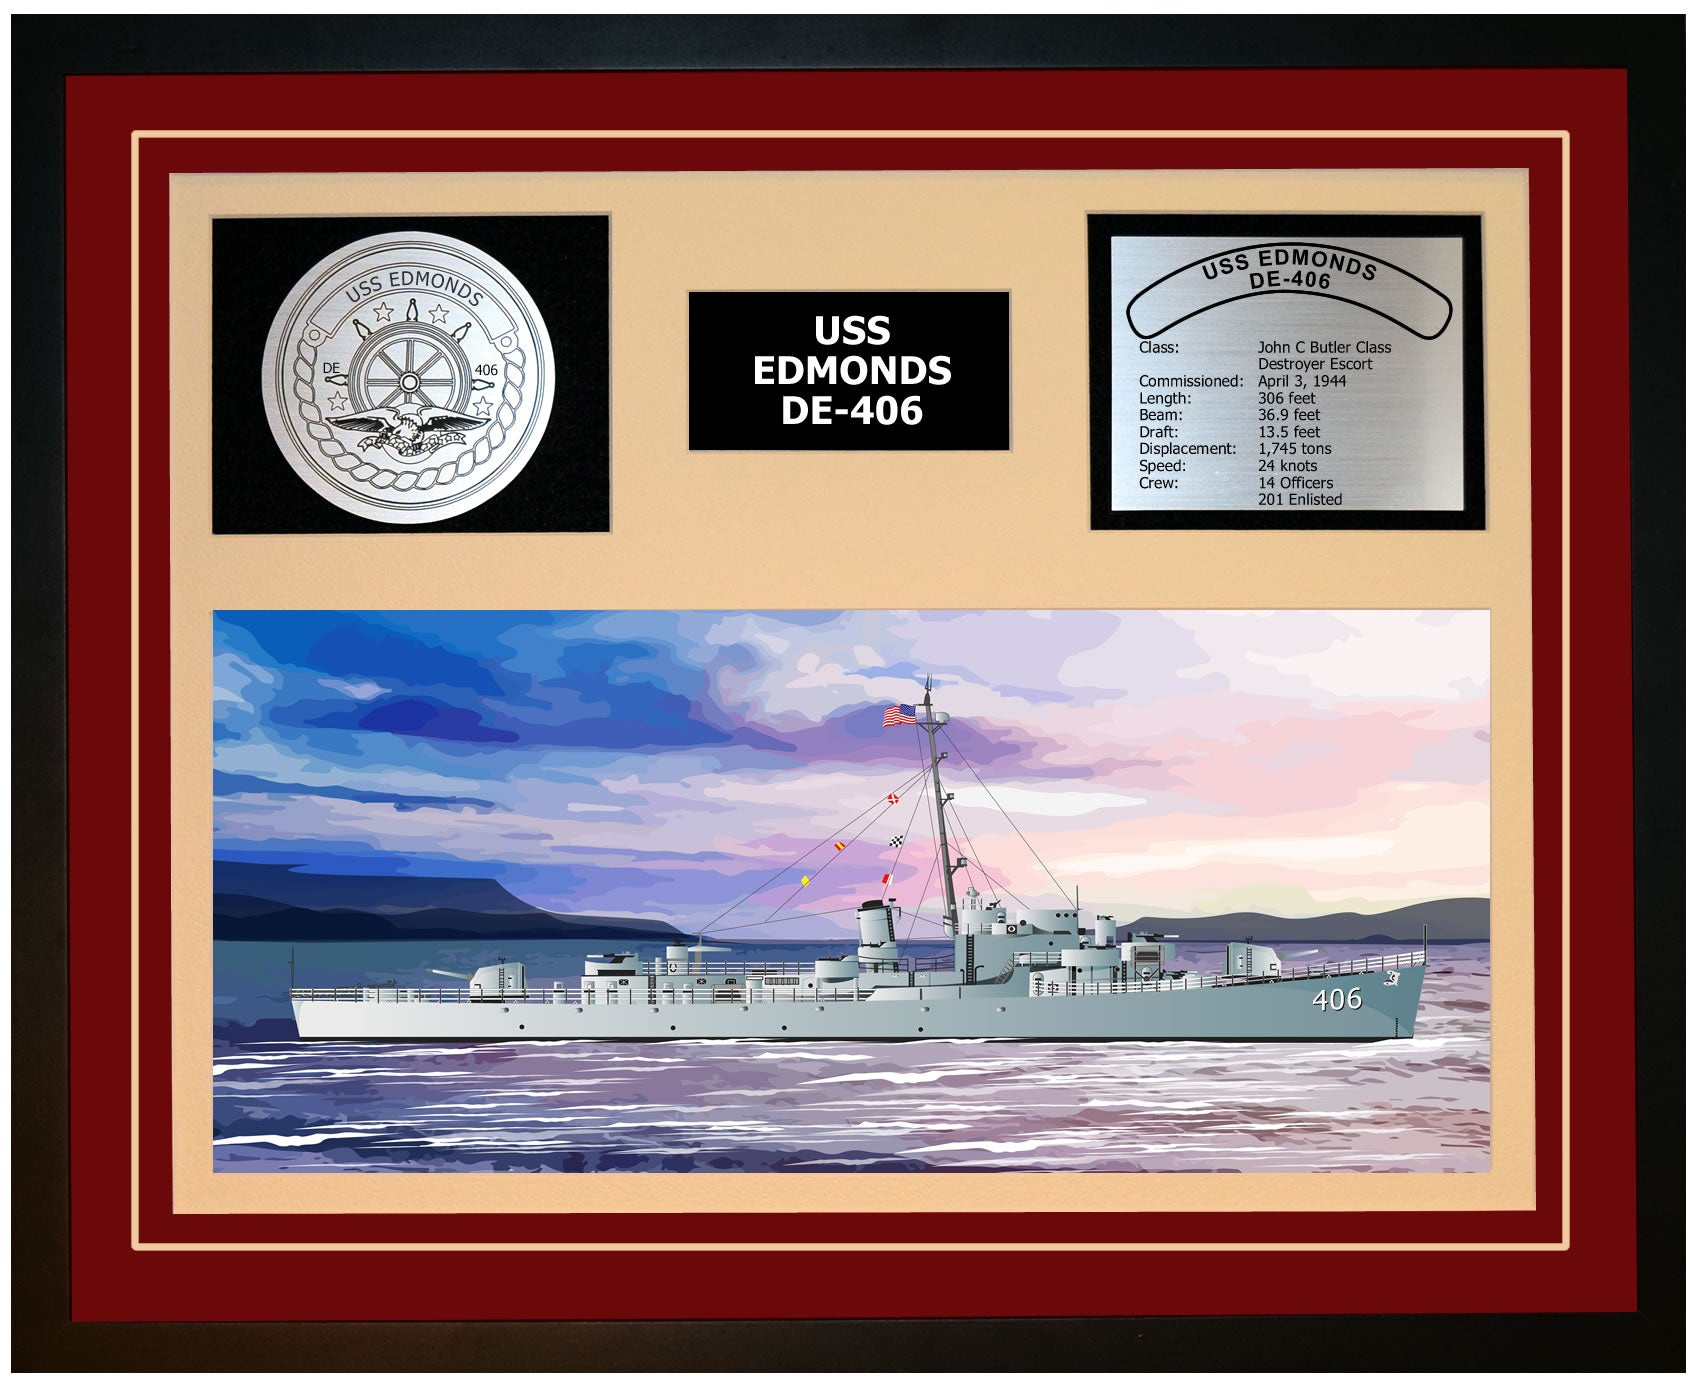 USS EDMONDS DE-406 Framed Navy Ship Display Burgundy